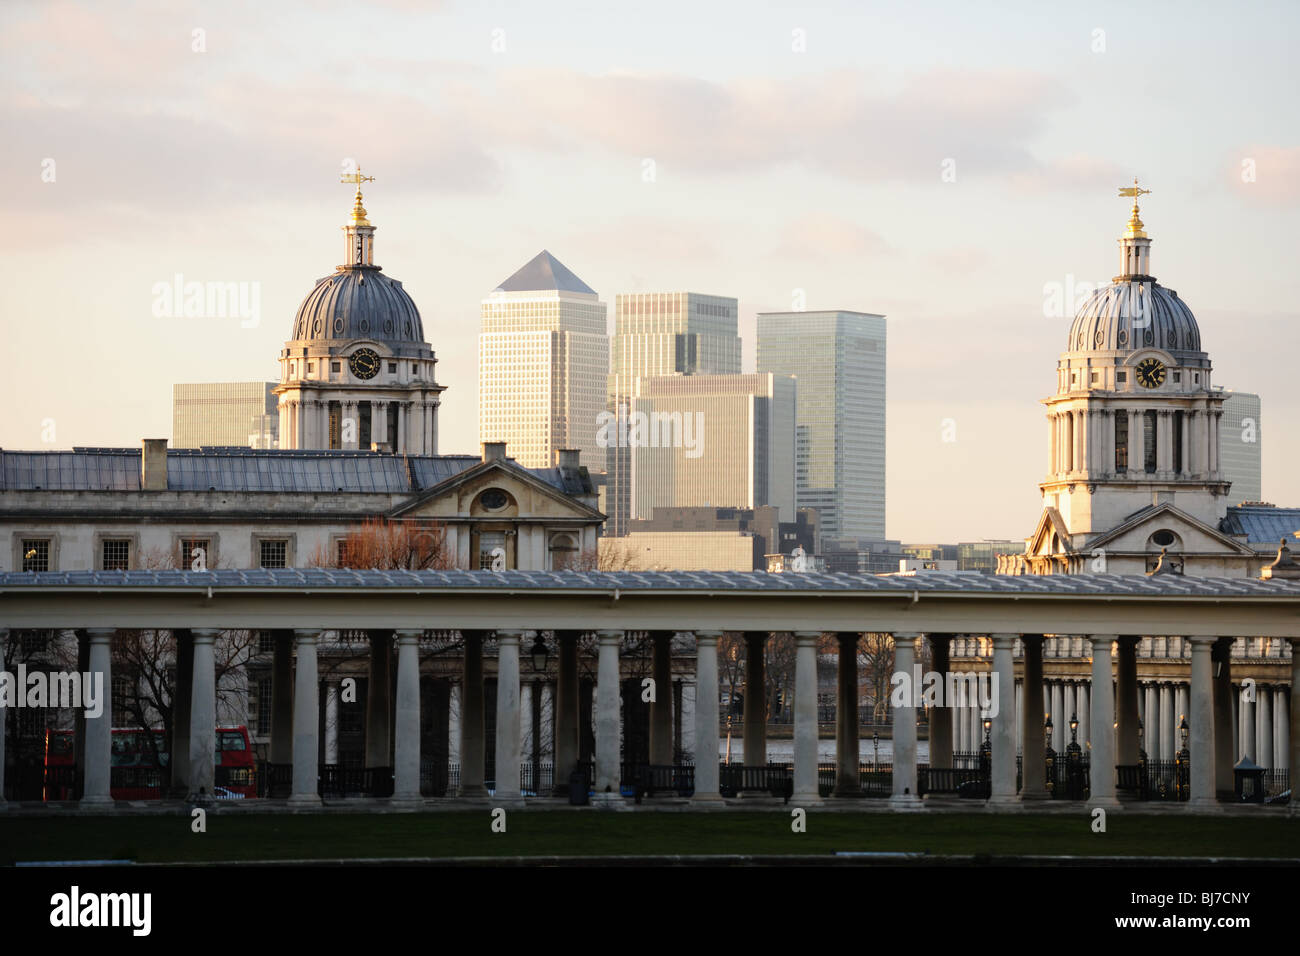 Towers of the Old Royal Naval College, Greenwich, London, UK, a world heritage site, with Canary Wharf in the background Stock Photo